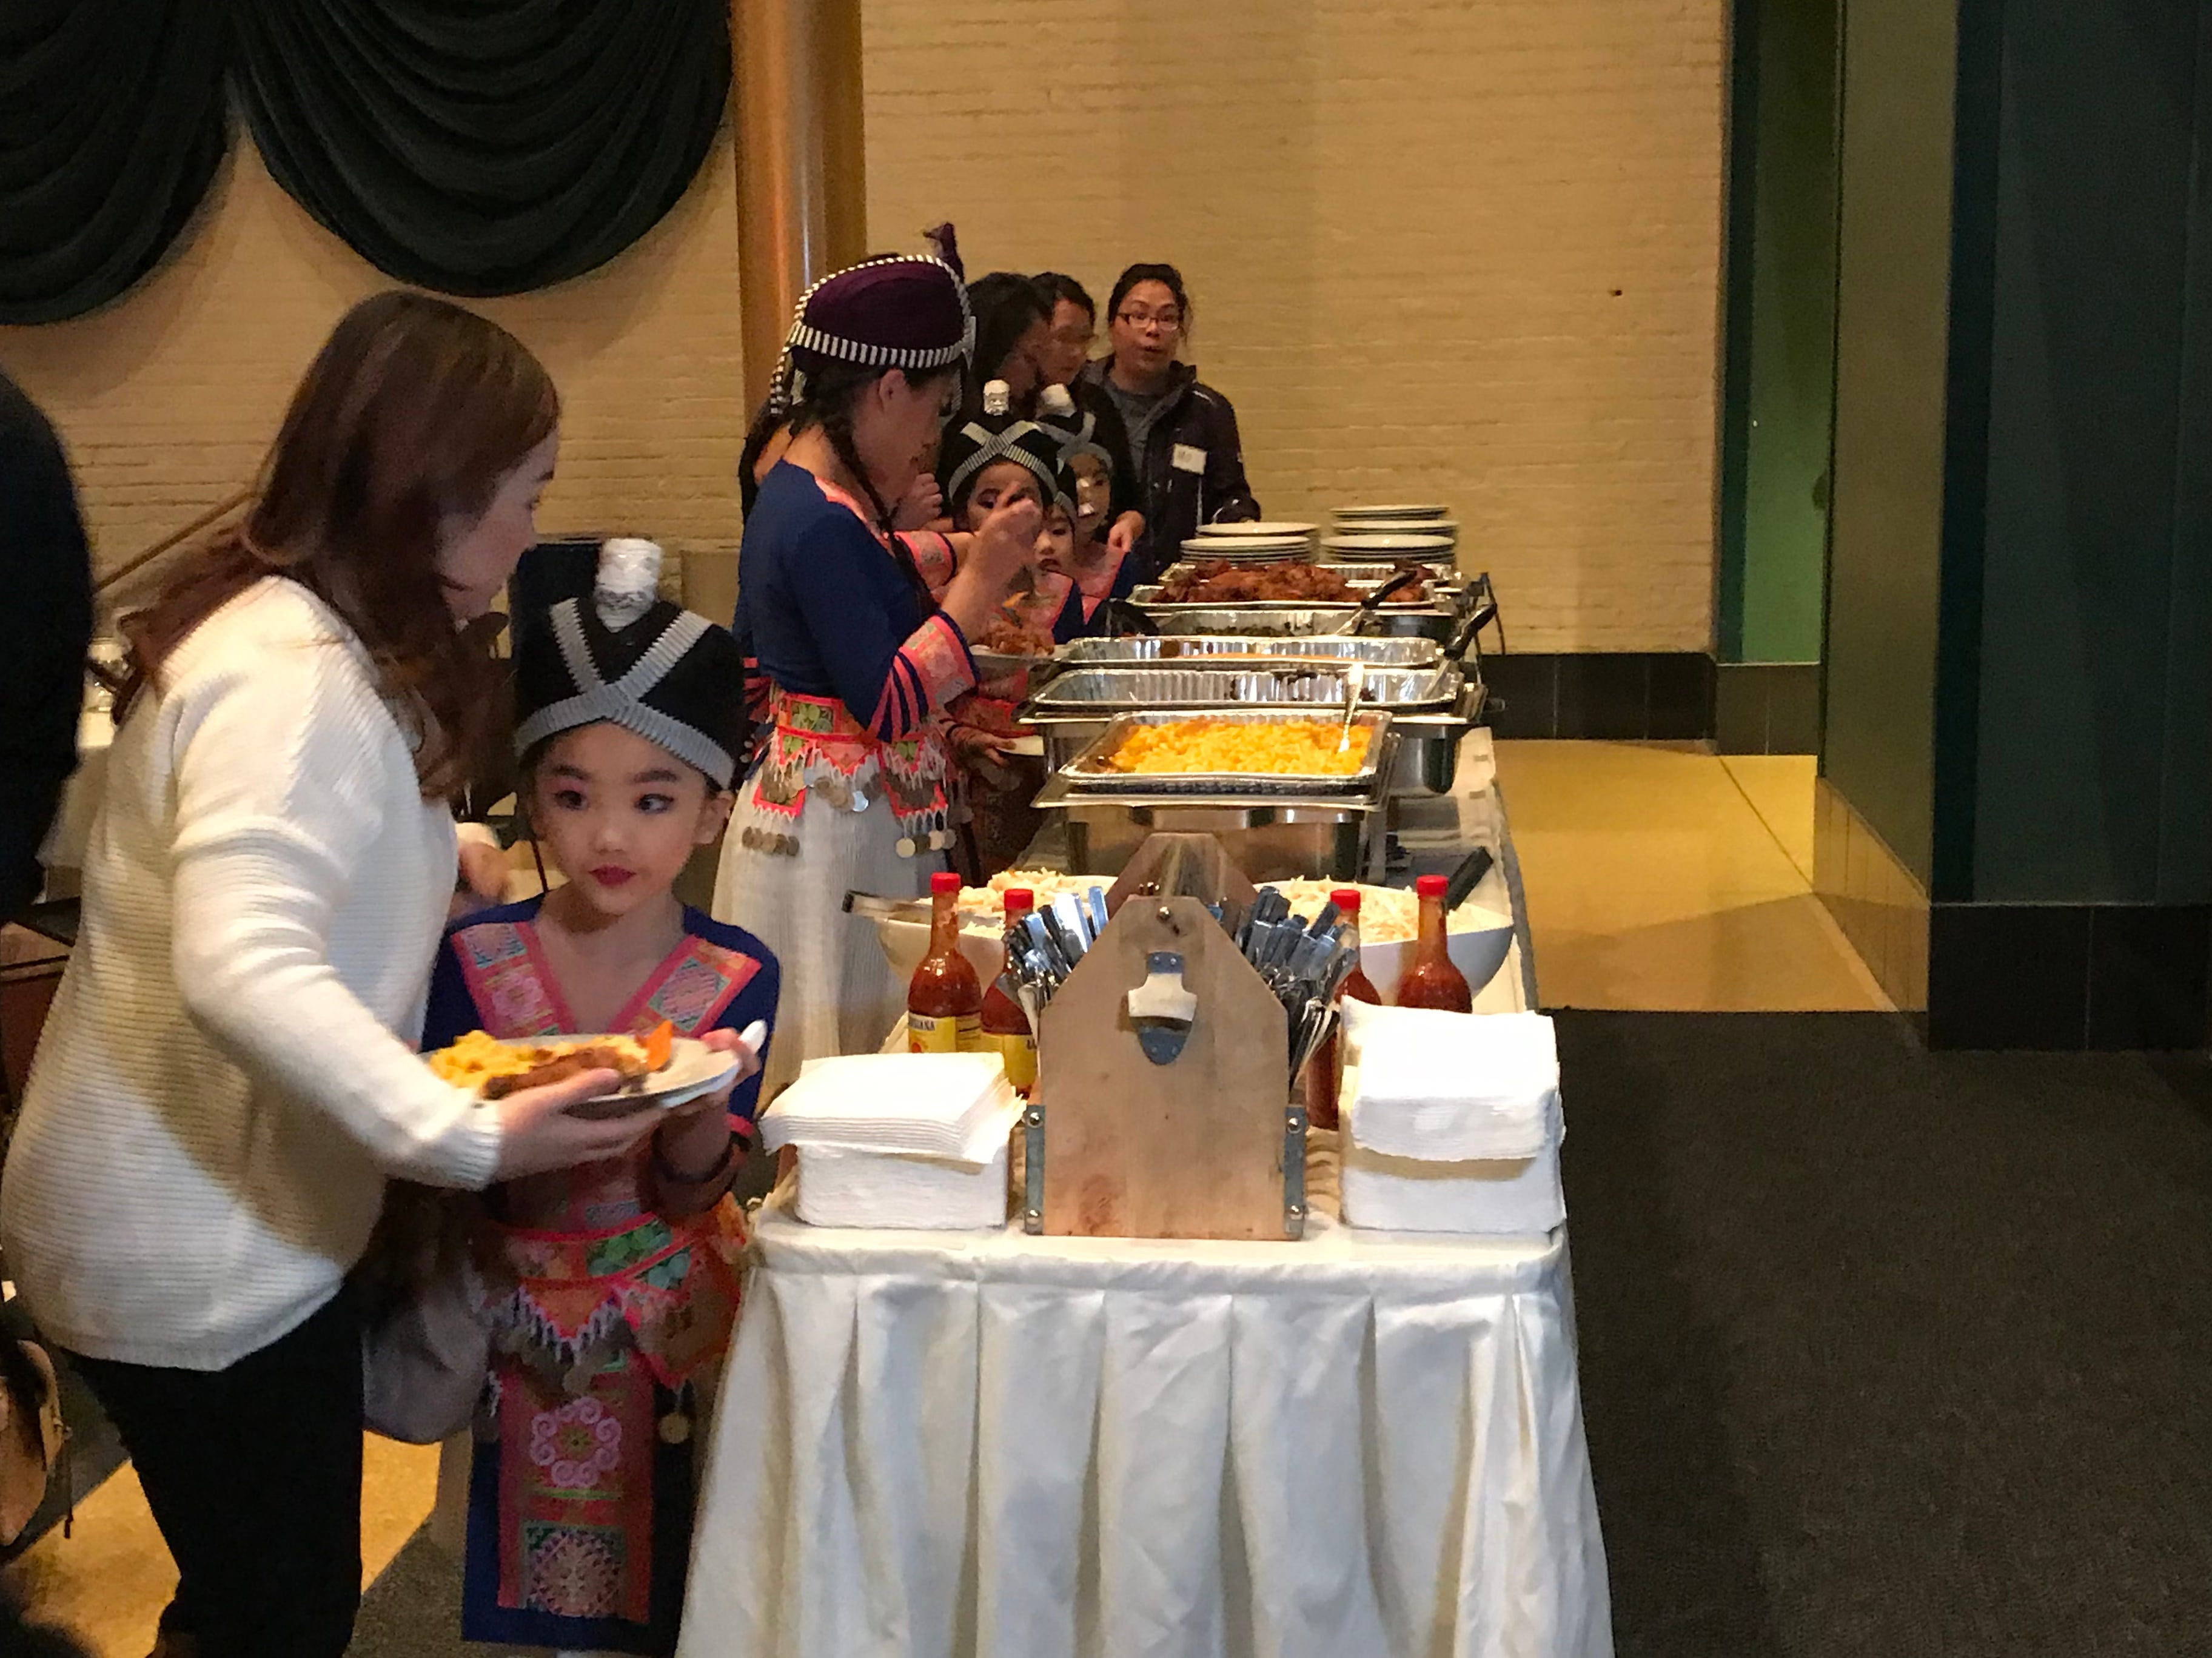 Girls from a Hmong dance group get dinner at the MLK Day celebration at the Grand Theater in Wausau.